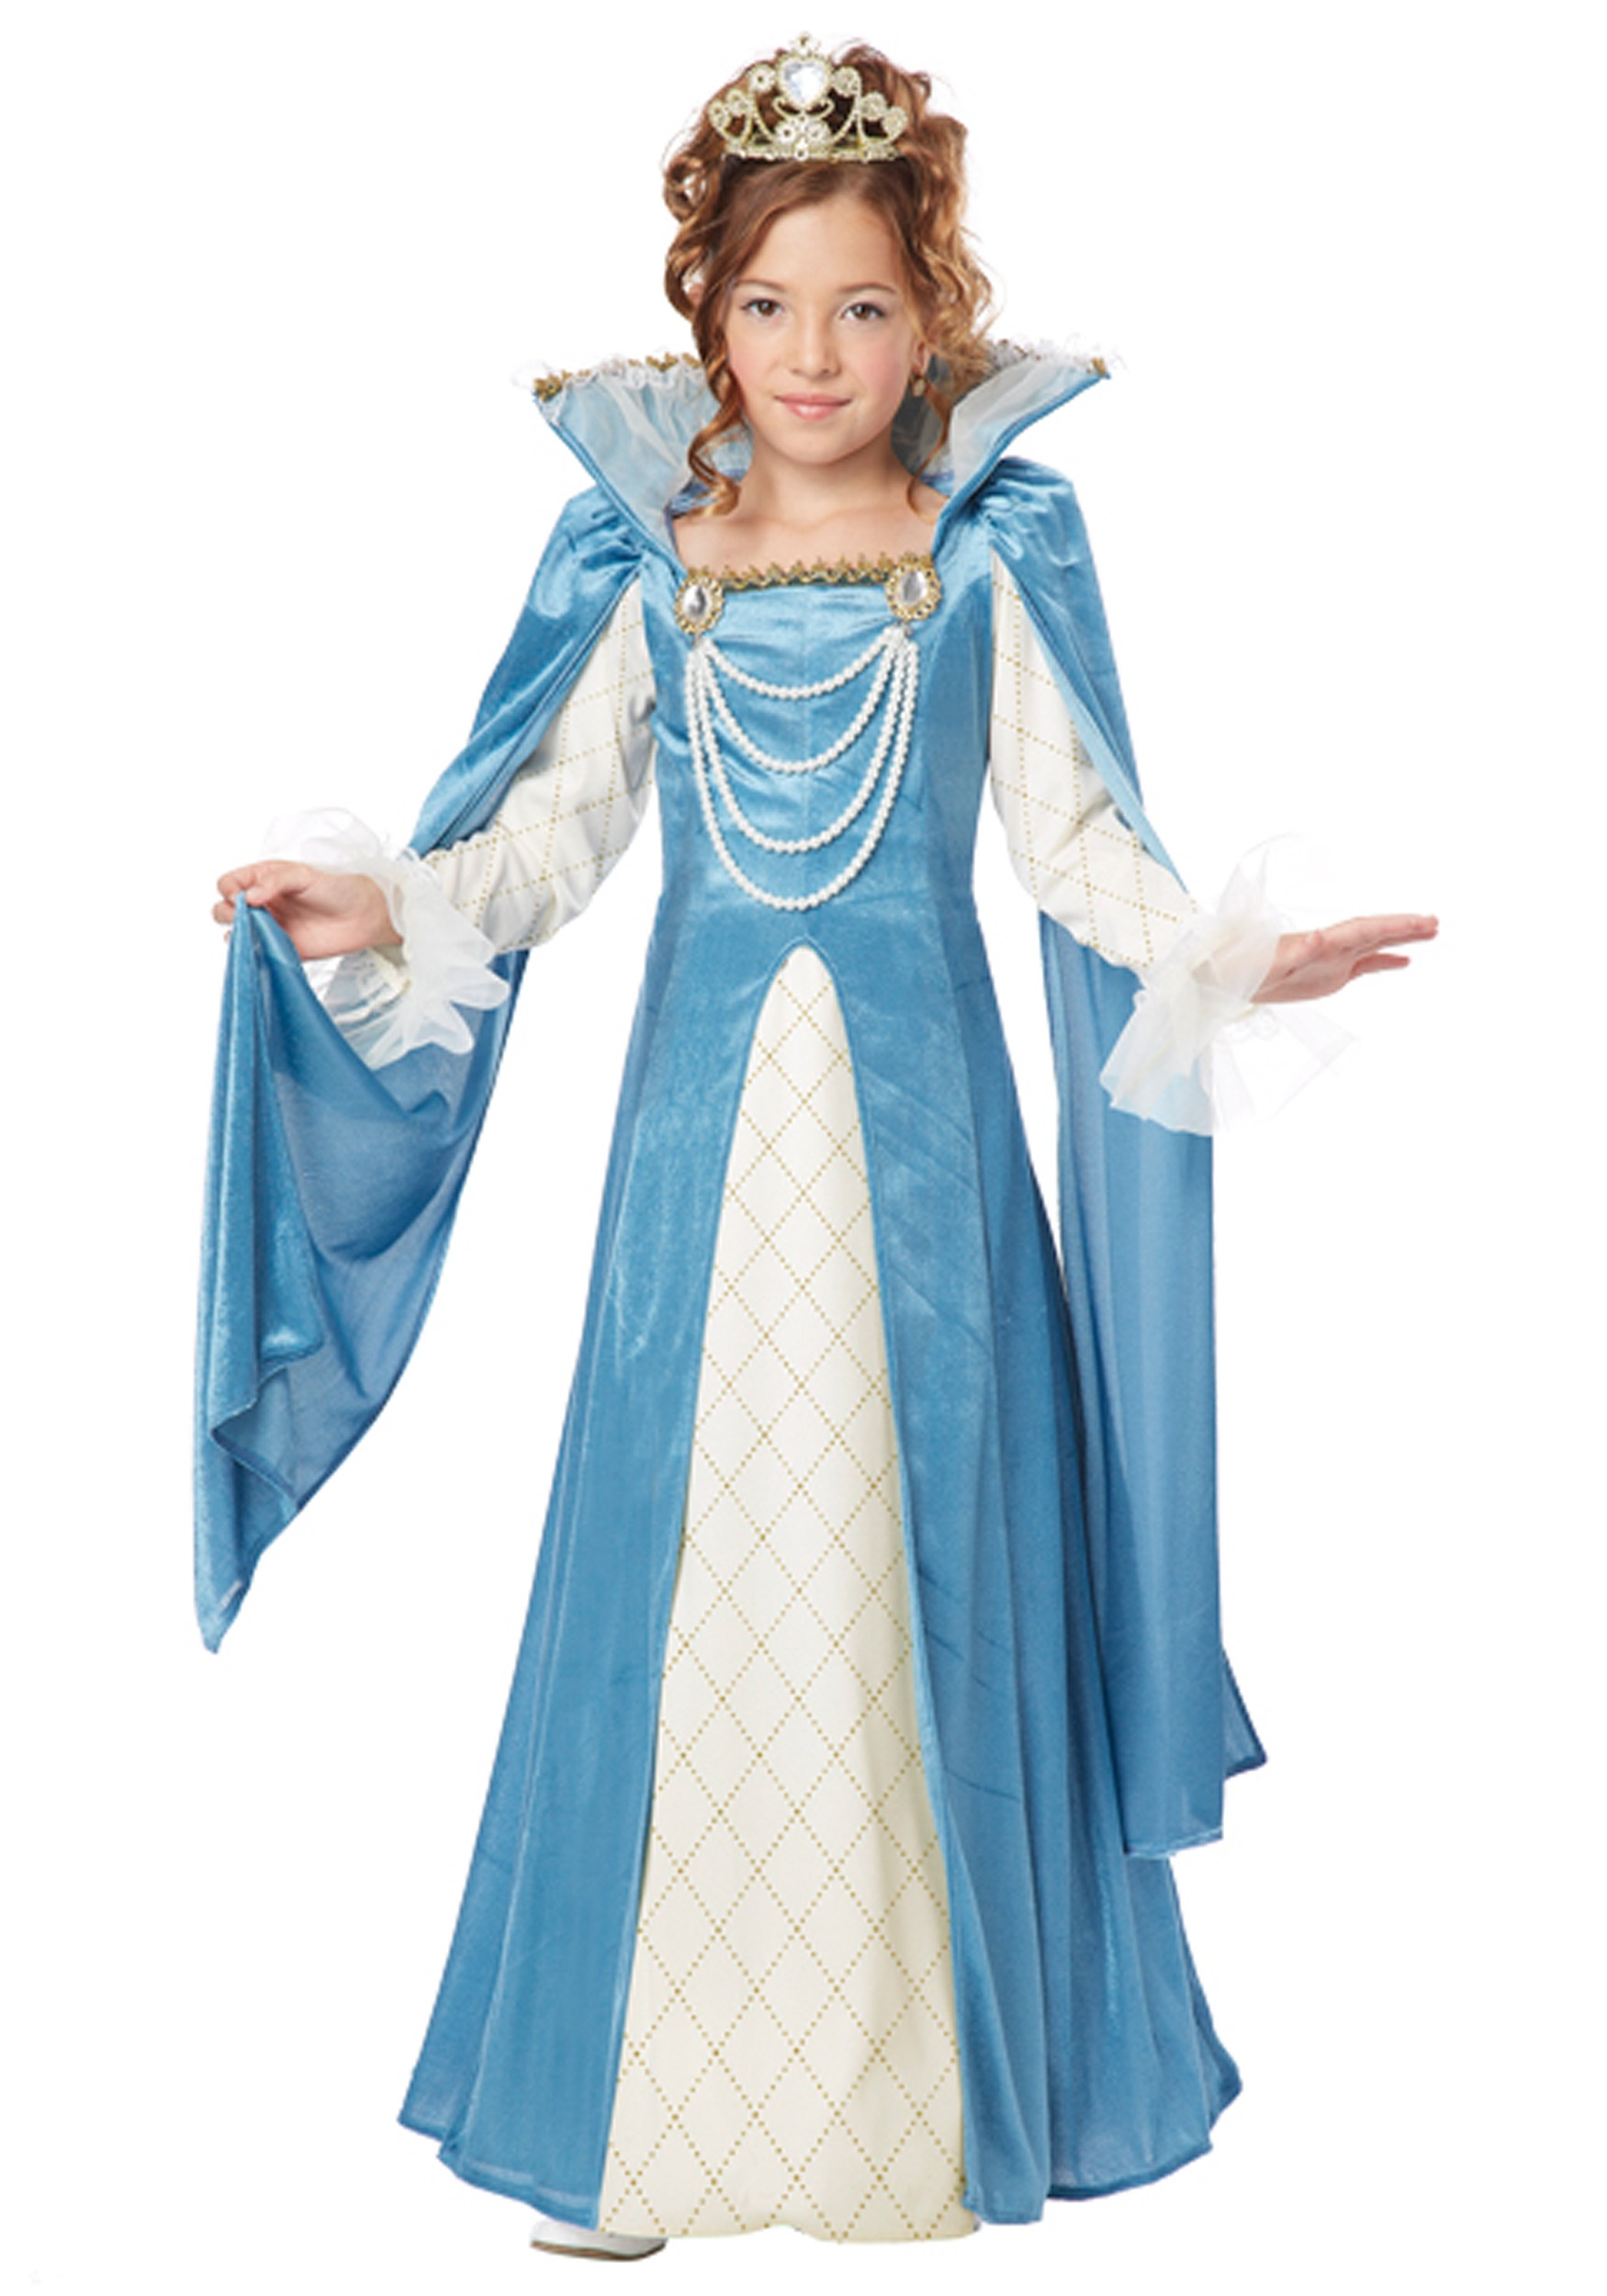 King and queen costumes royal king halloween costume girls renaissance queen costume solutioingenieria Gallery